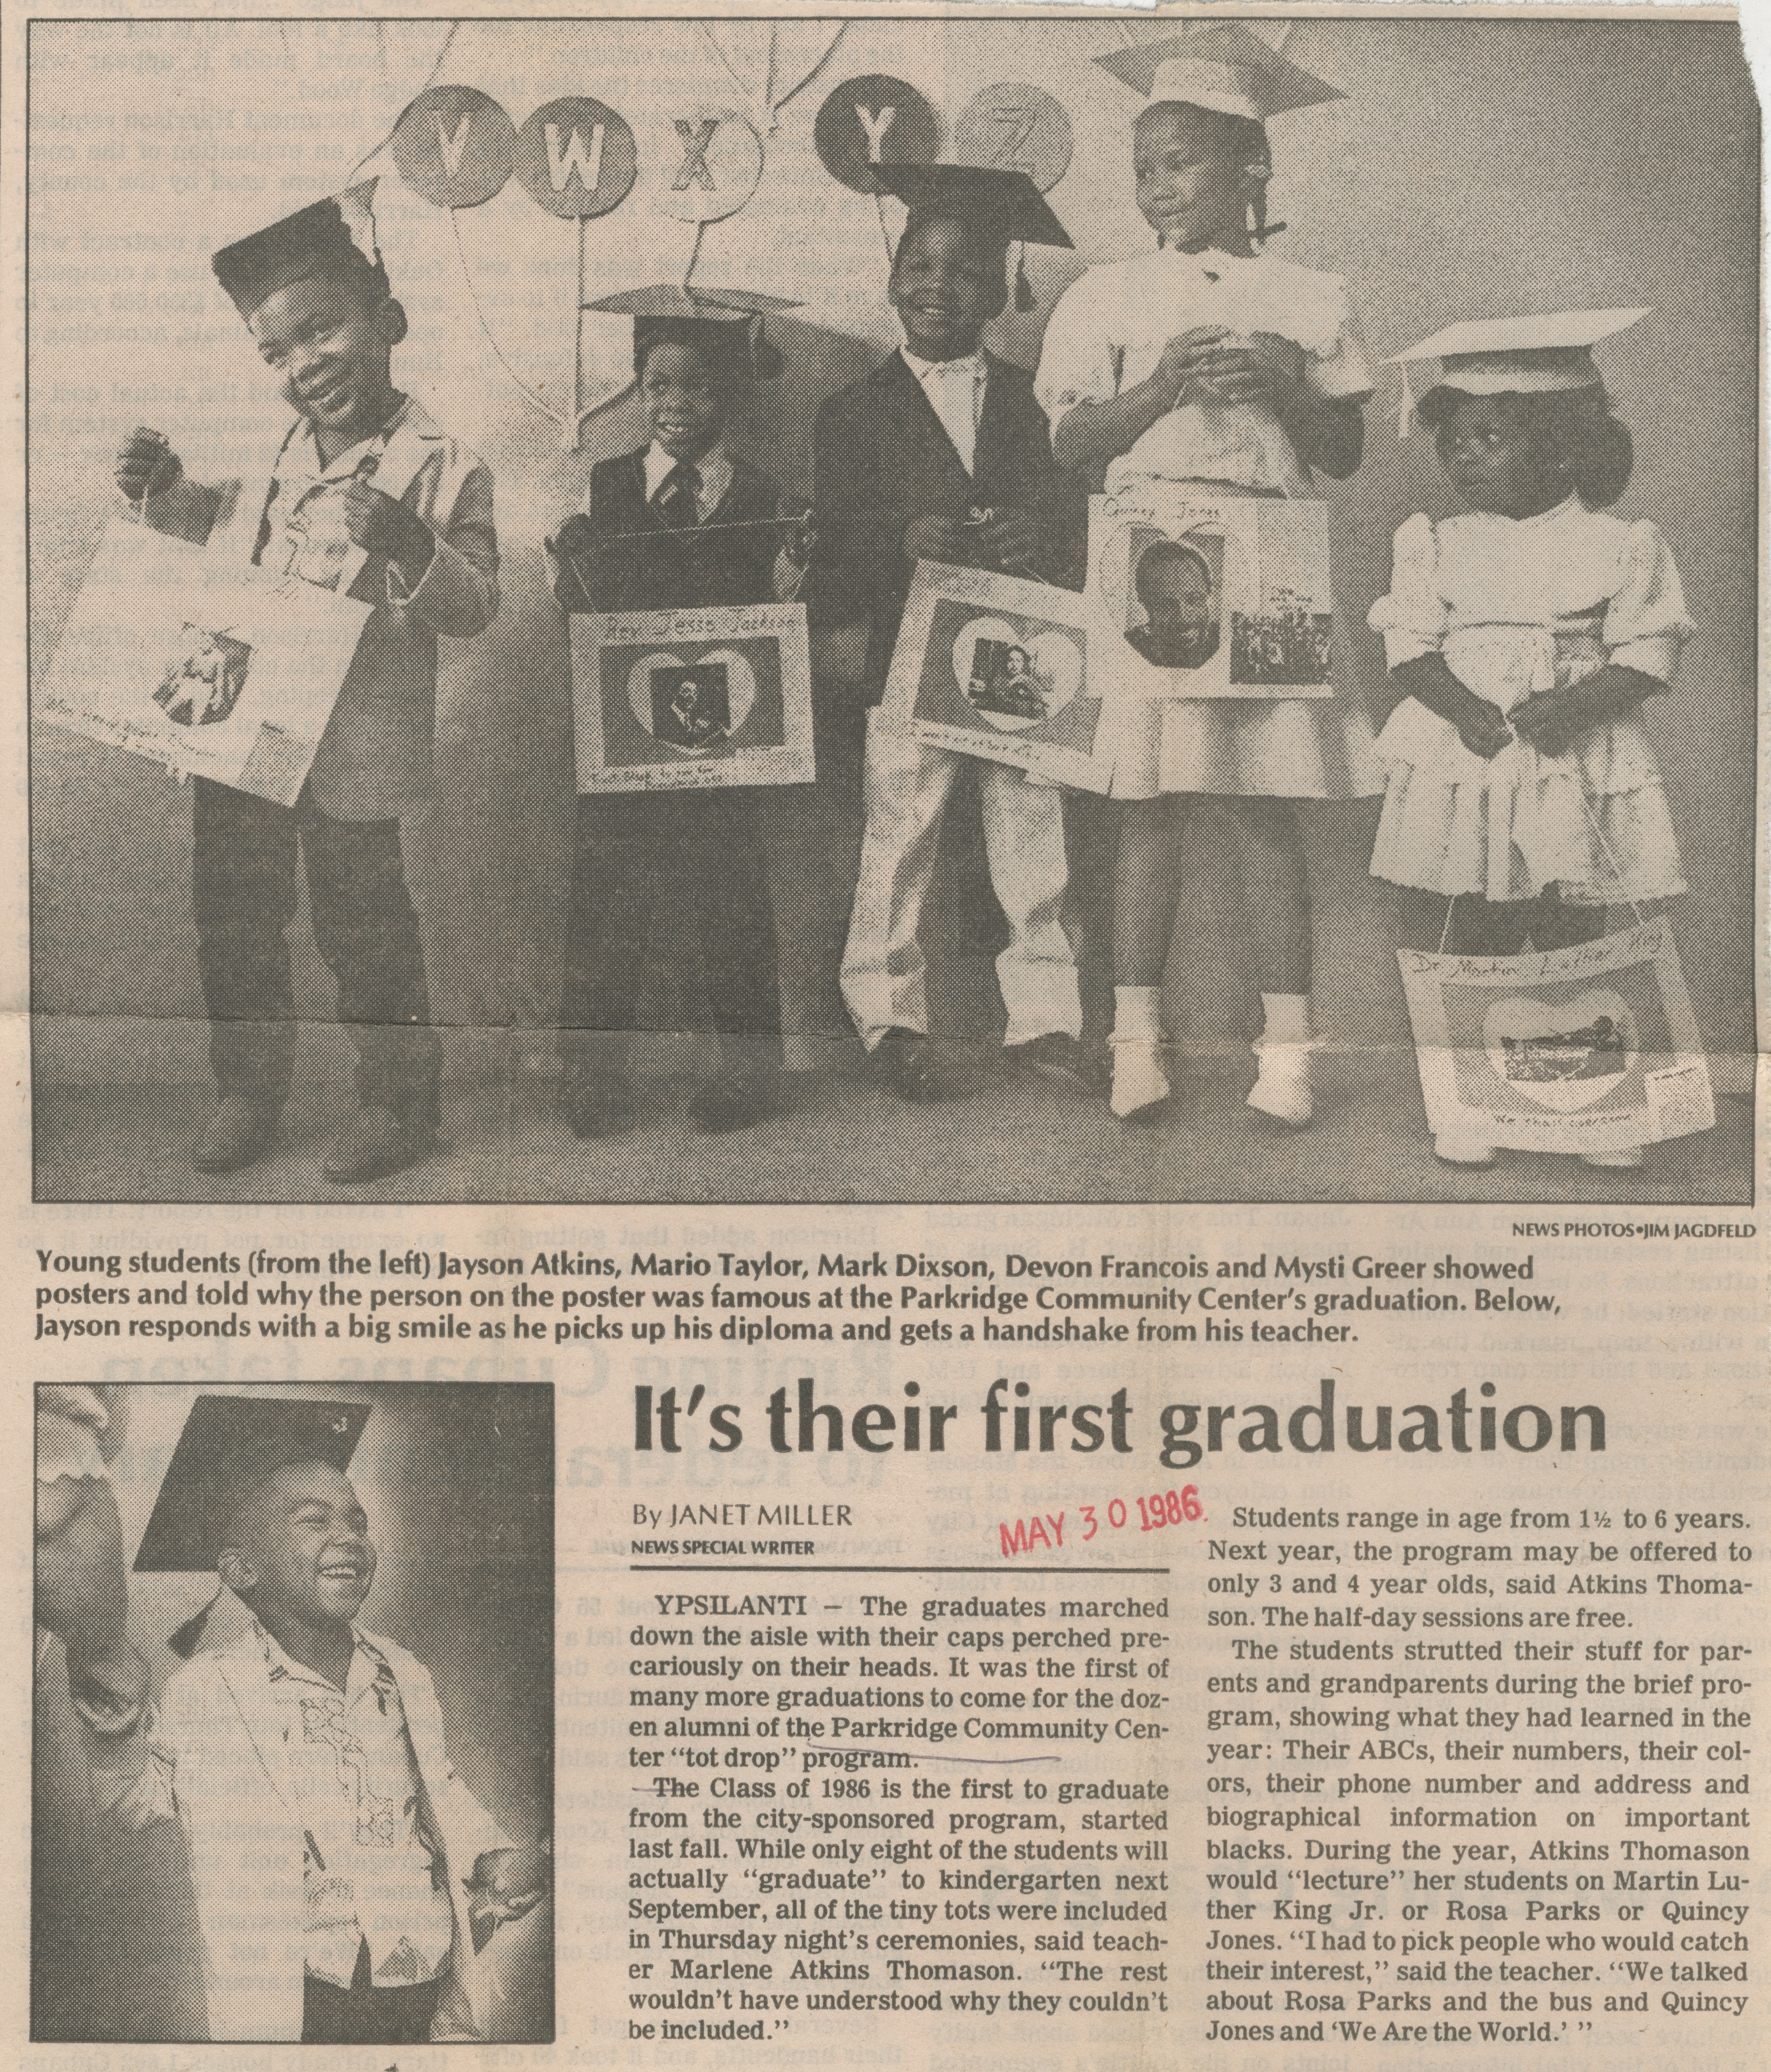 It's Their First Graduation image